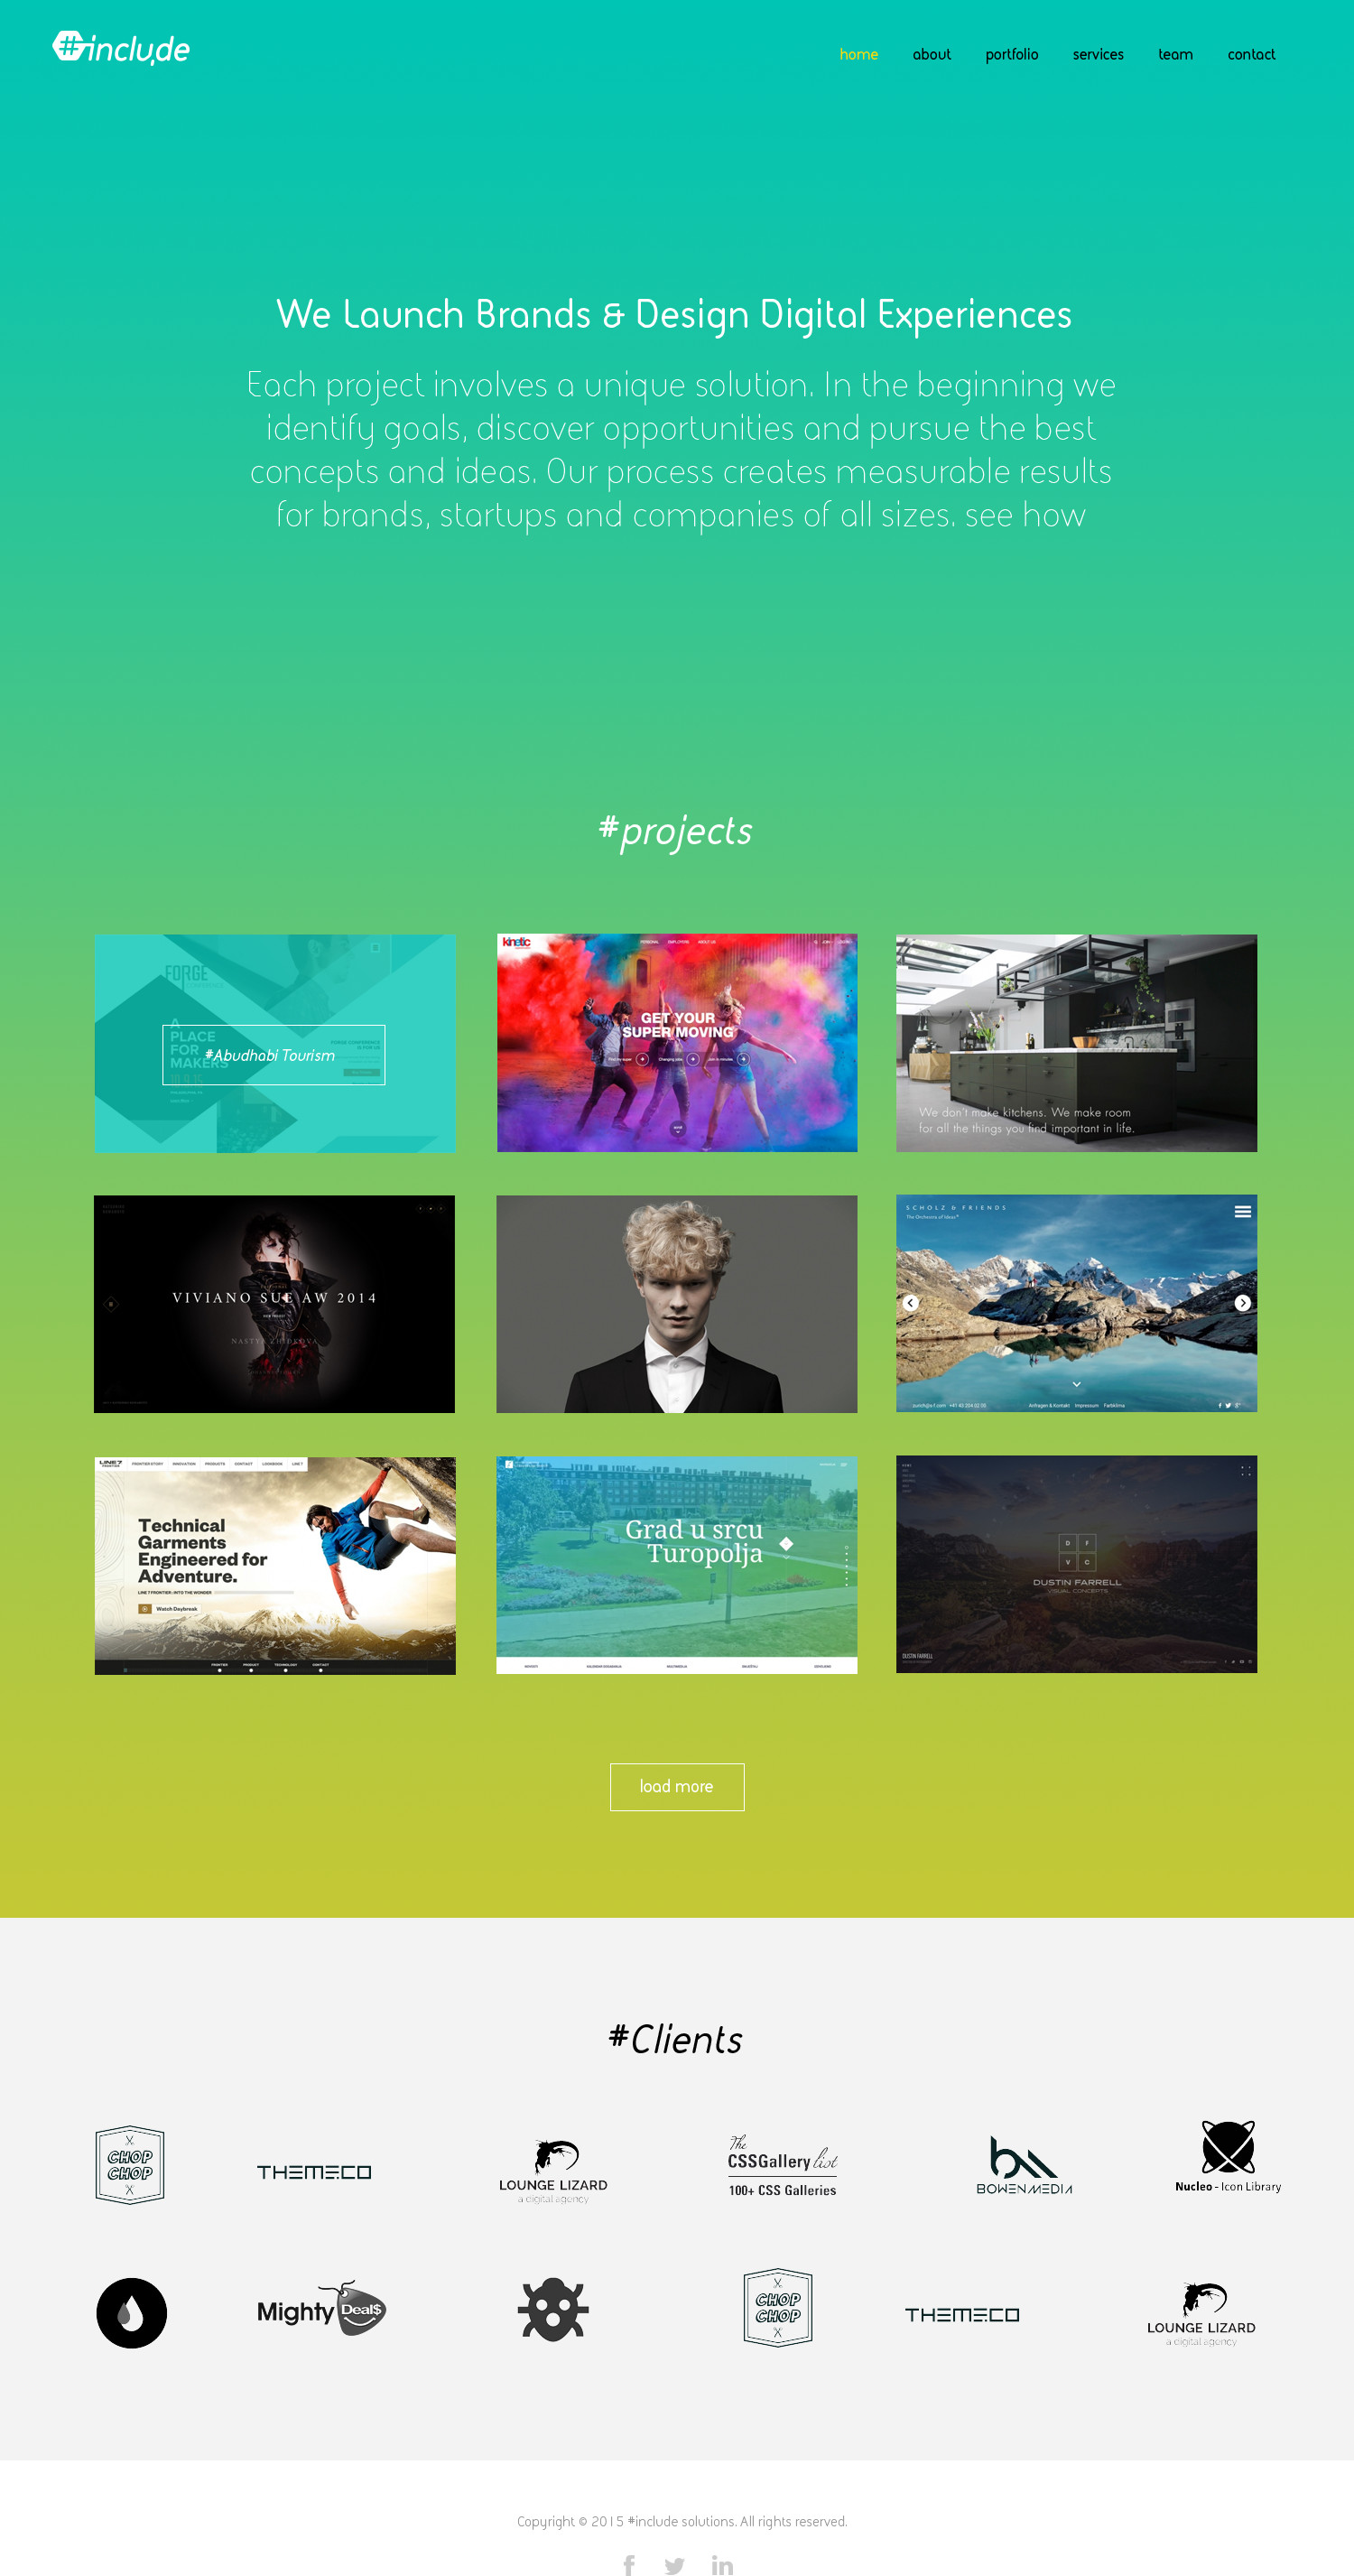 UI/UX Design by www.iamrakesh.com | Life and Travel by Rakesh | UI/UX Designer | Vlogger